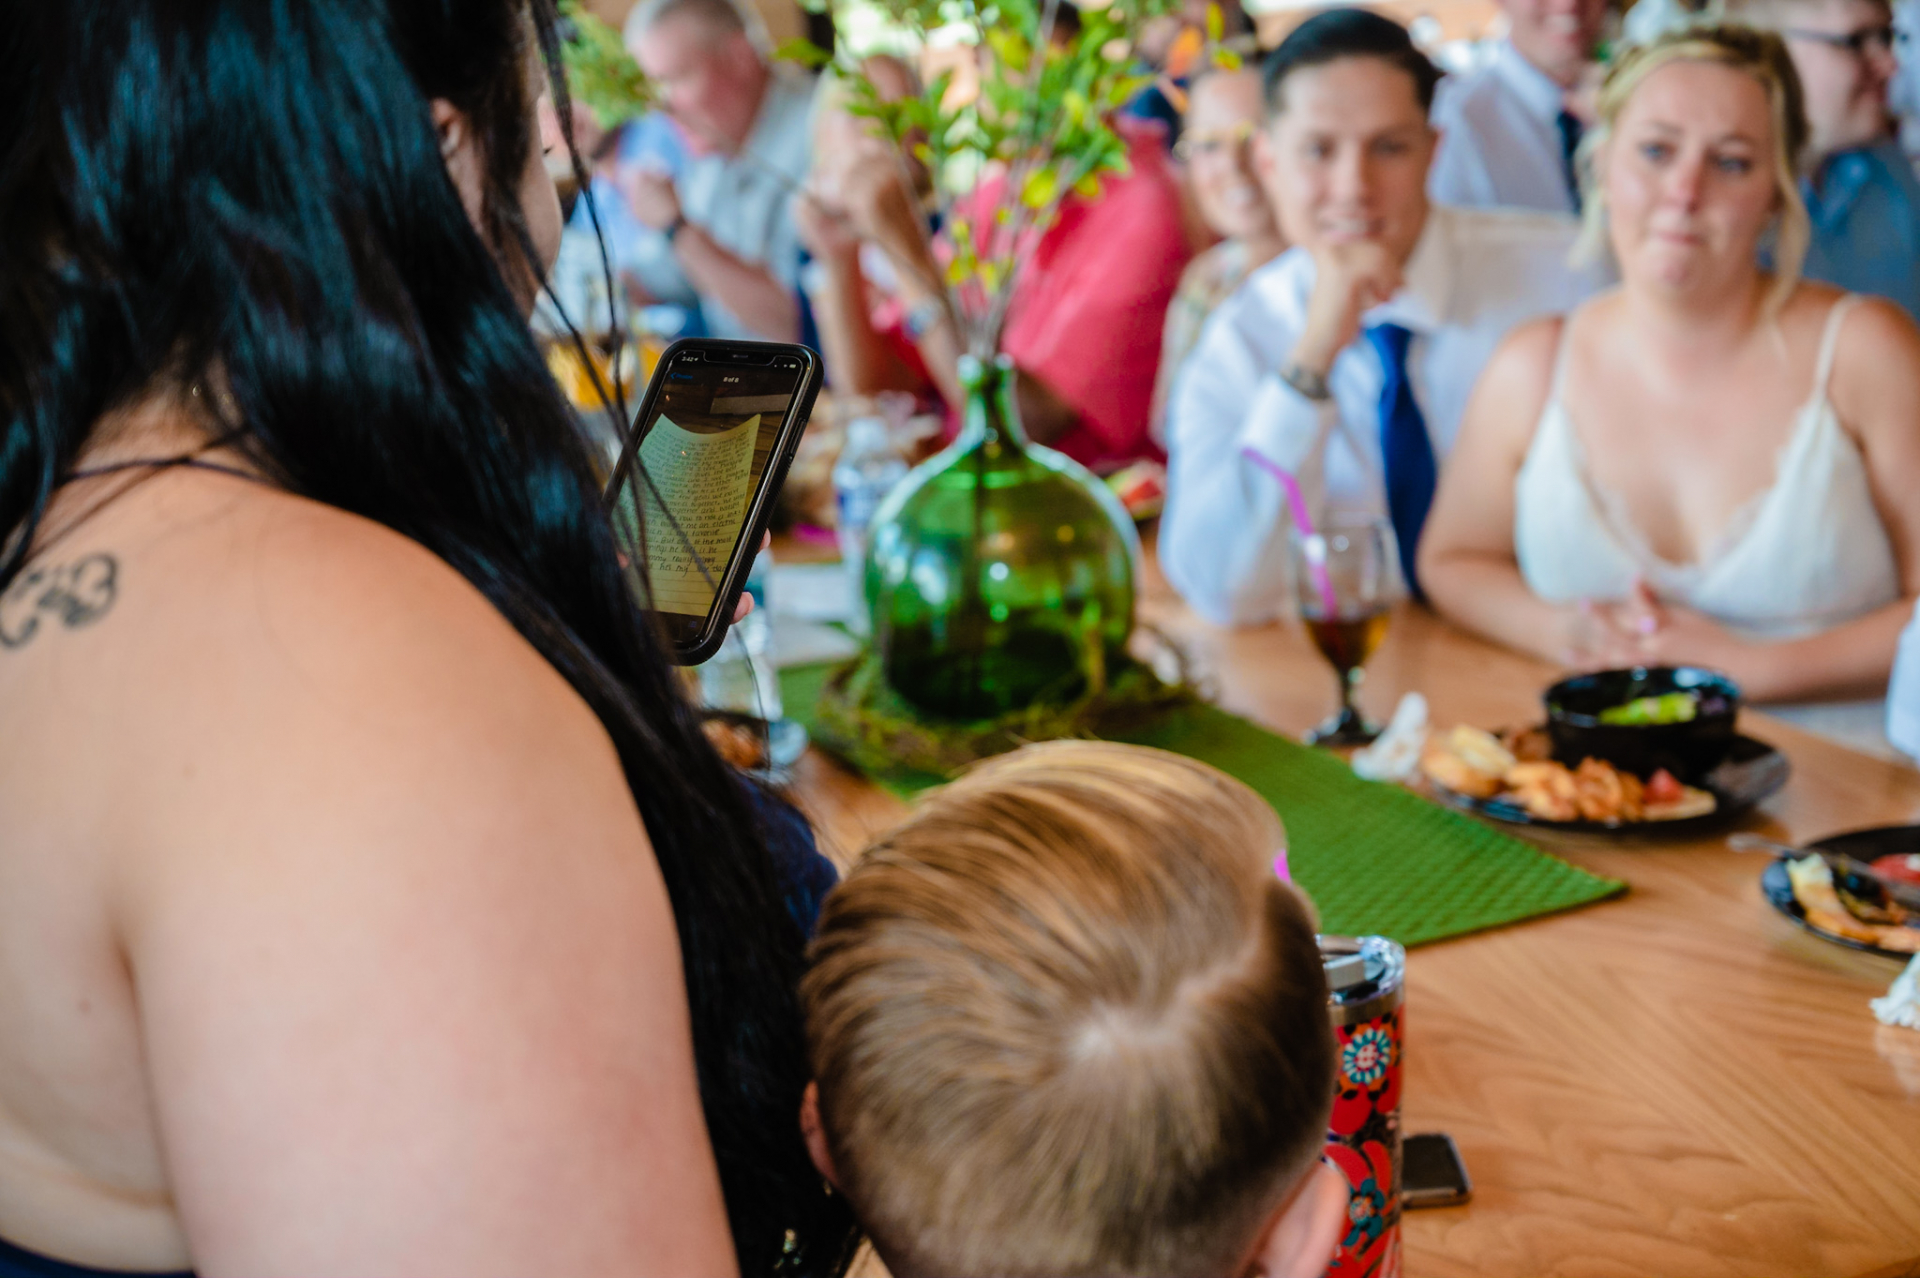 Gatlinburg Cabin Rentals - Pigeon Forge Elopement Photo | The bride and groom listen as the maid of honor reads from her phone